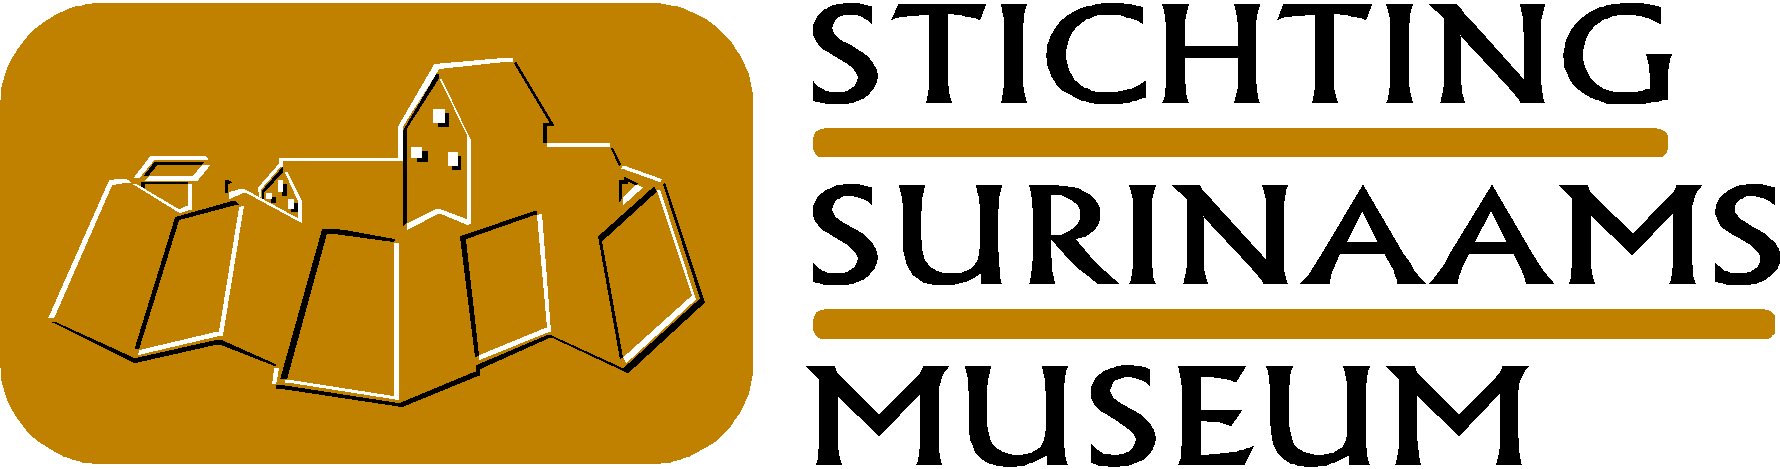 SurinaamsMuseum-for-web